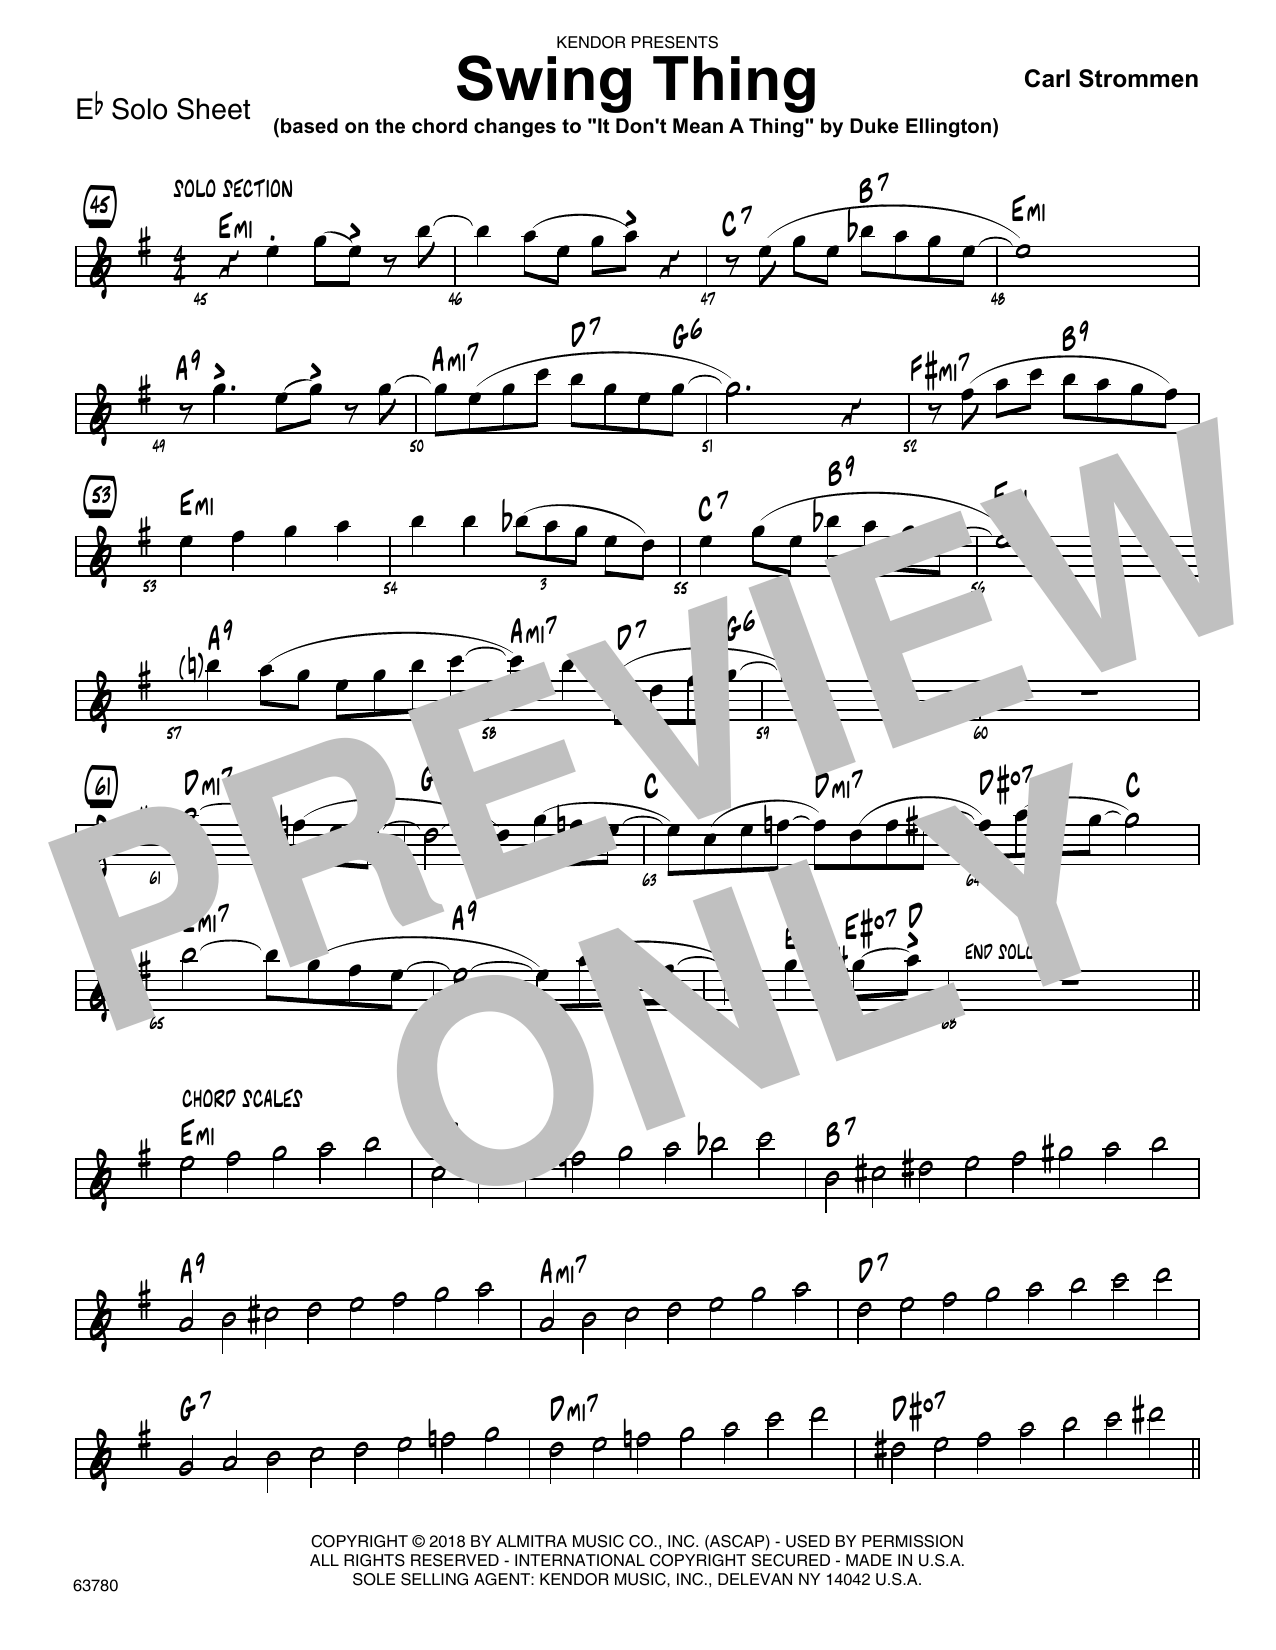 Carl Strommen Swing Thing - Eb Solo Sheet sheet music preview music notes and score for Jazz Ensemble including 1 page(s)